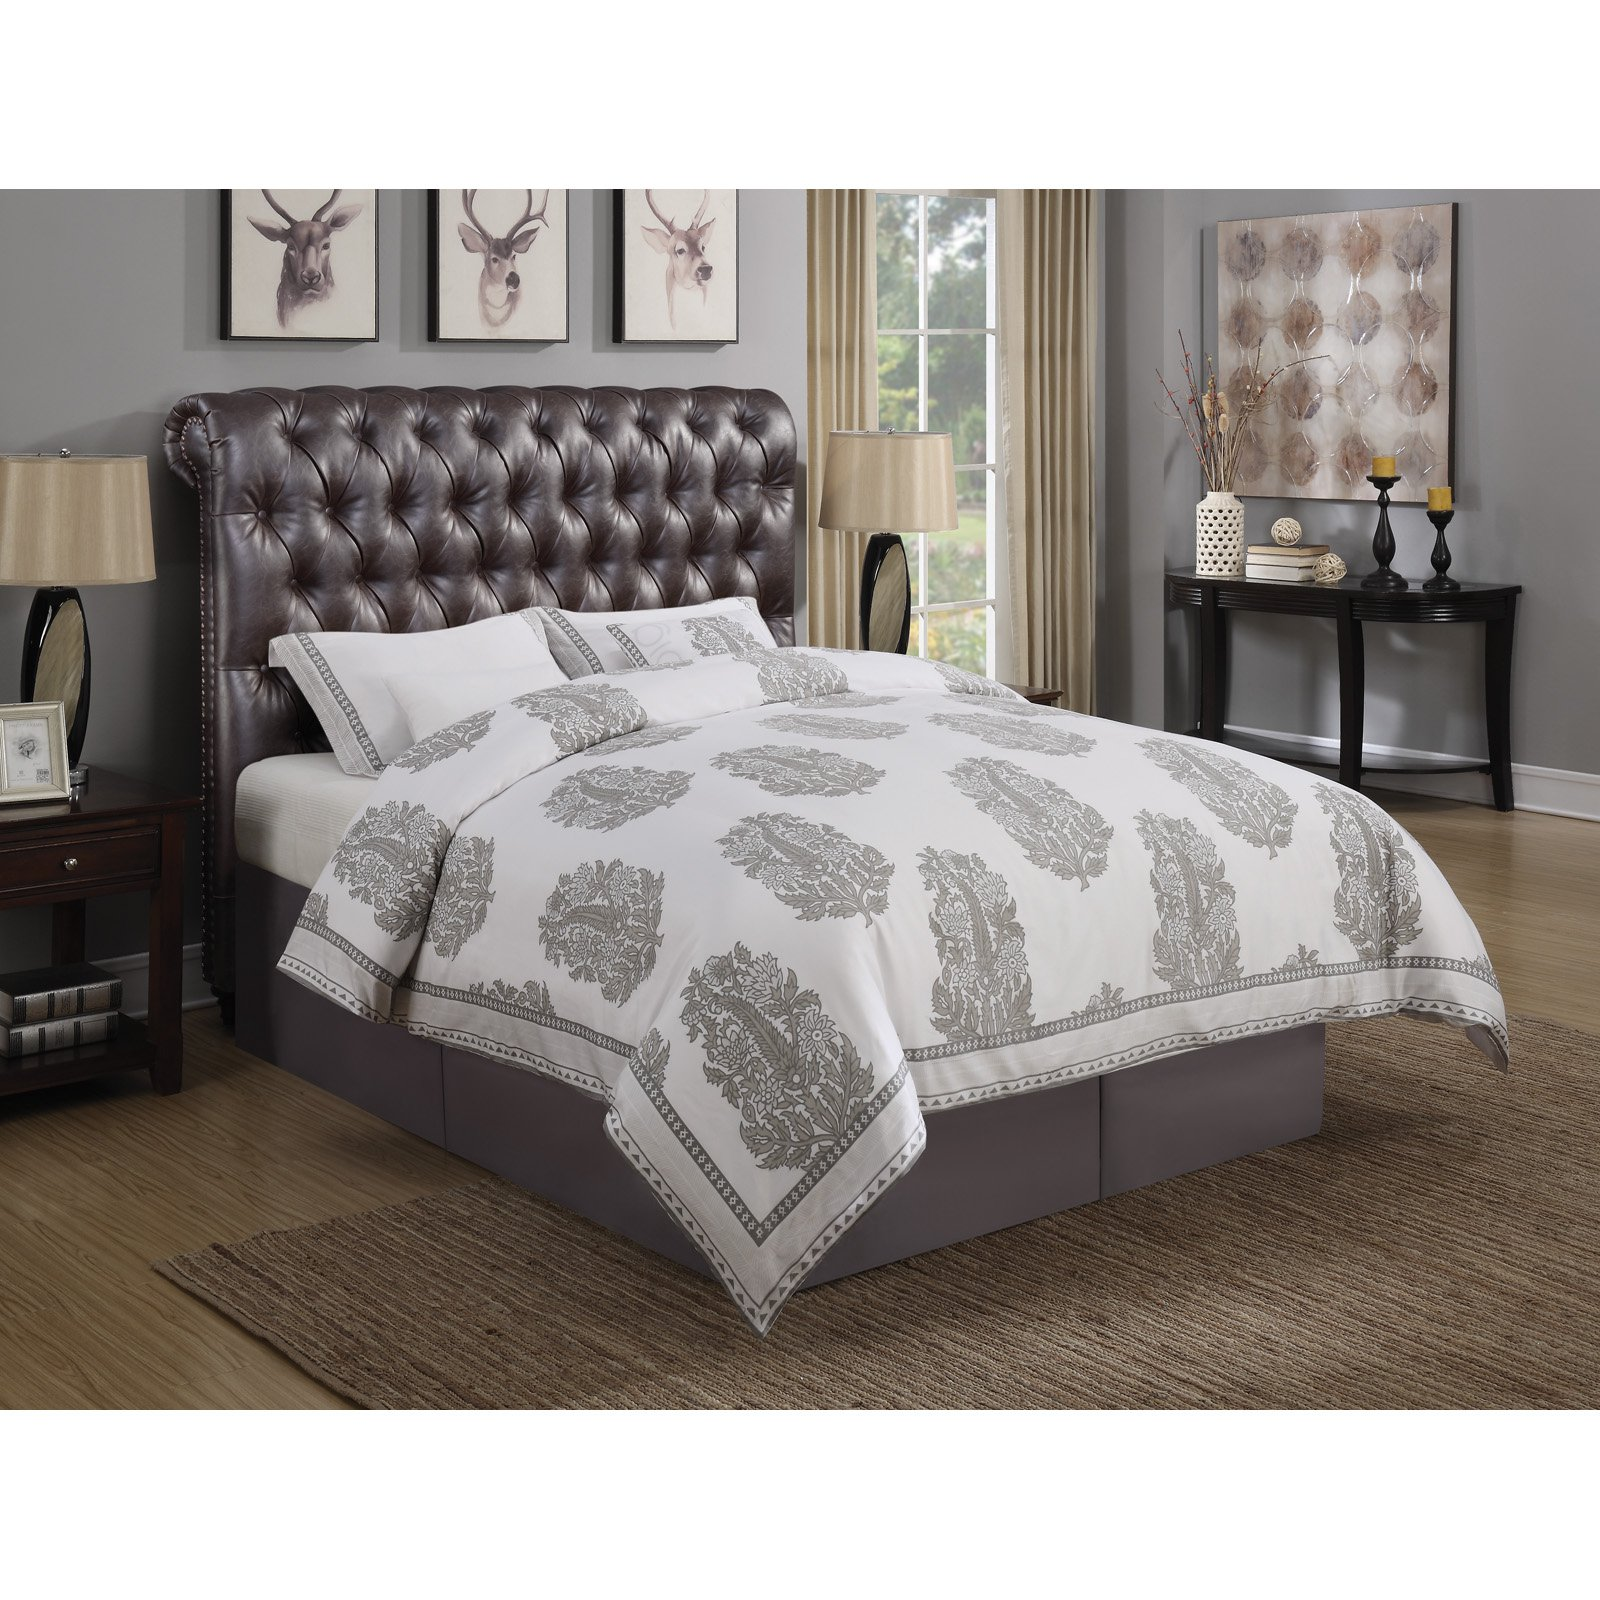 Coaster Furniture Devon Upholstered Headboard